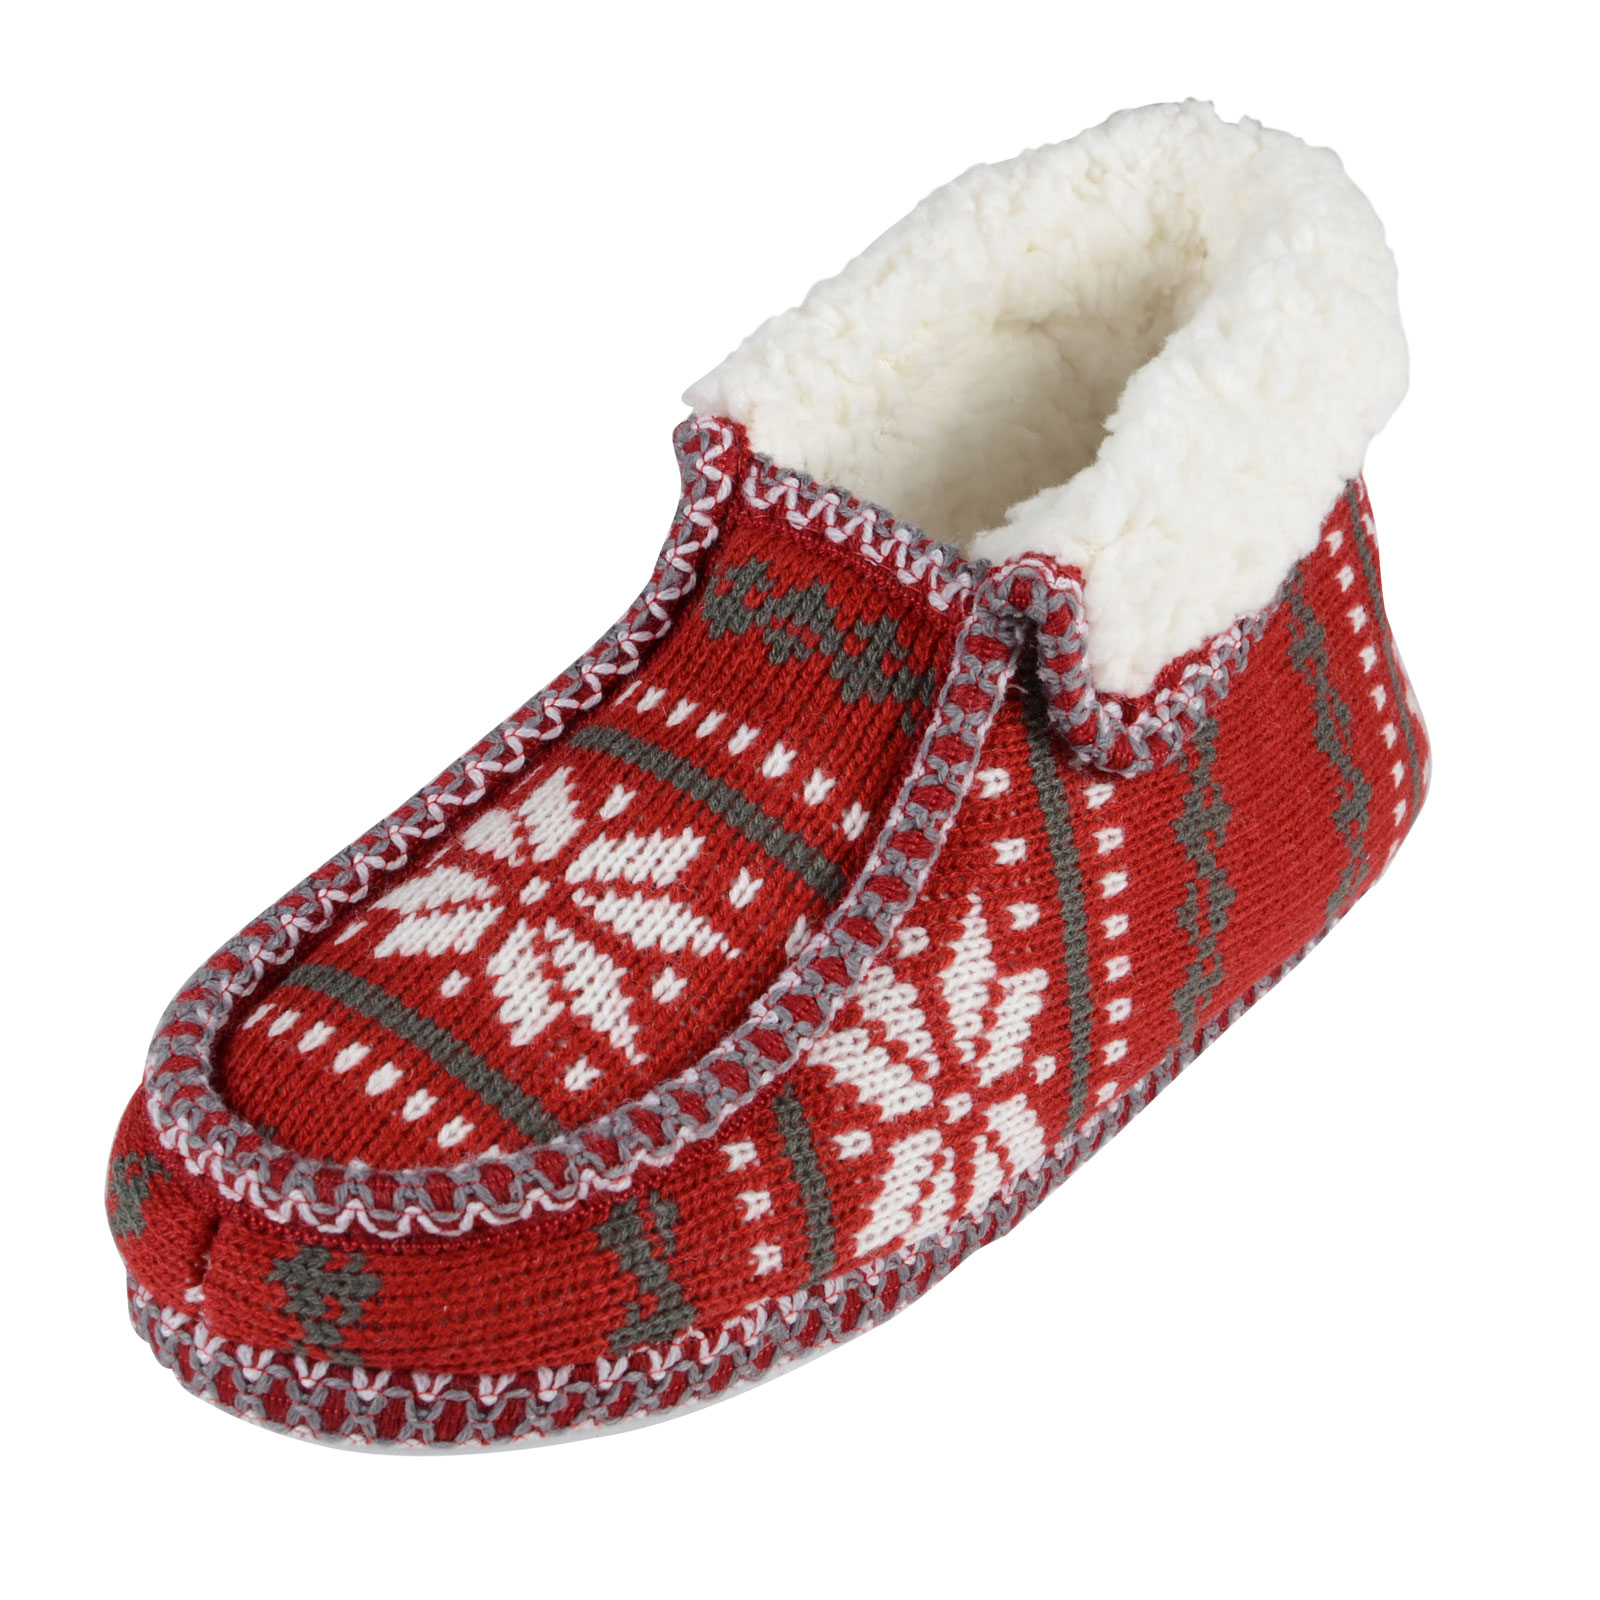 Find great deals on eBay for knitted booties. Shop with confidence.